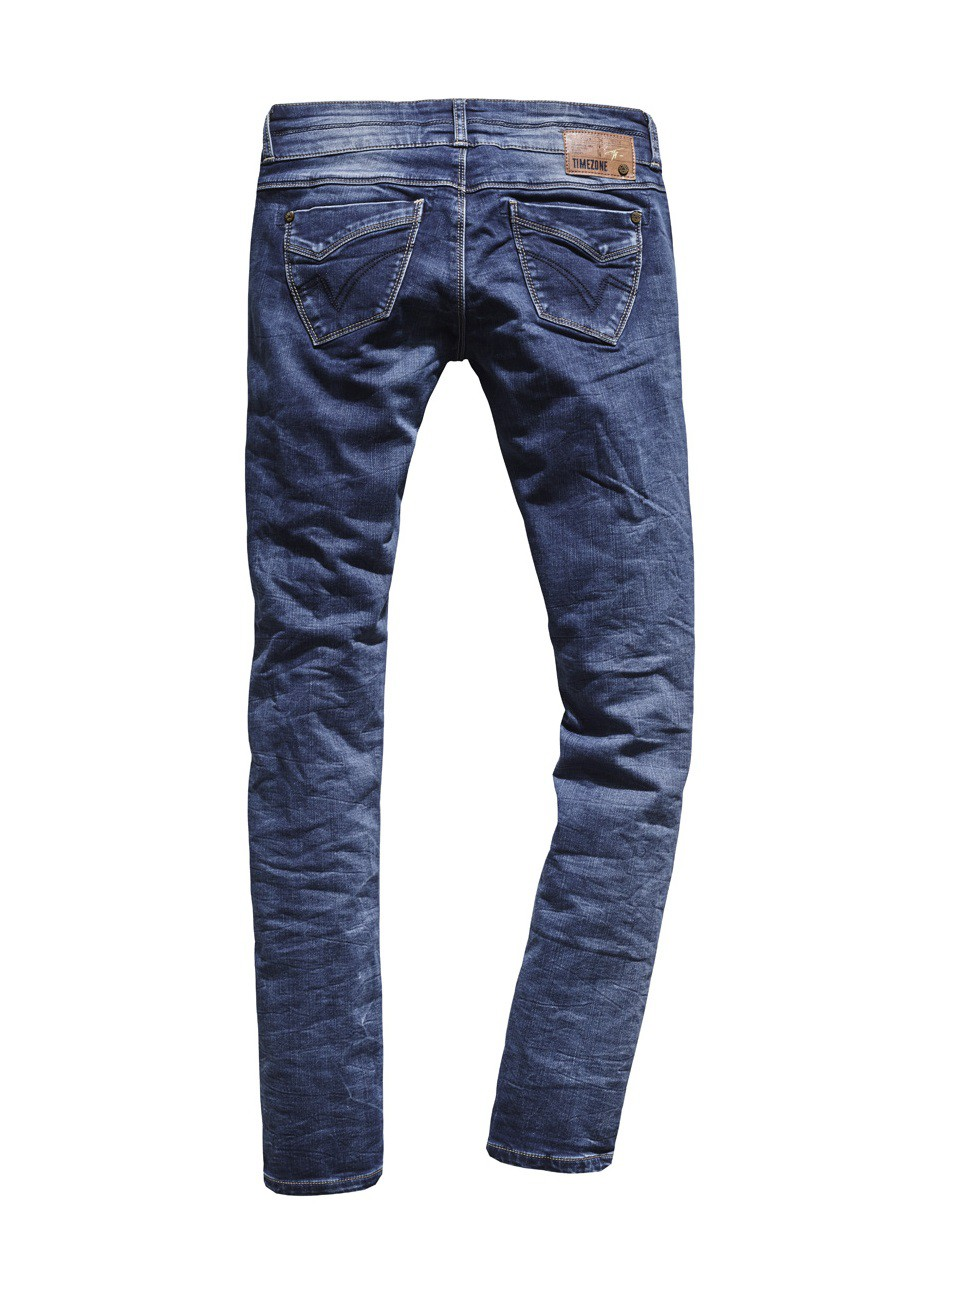 Timezone Damen Jeans EnyaTZ - Slim Fit - Workman Wash